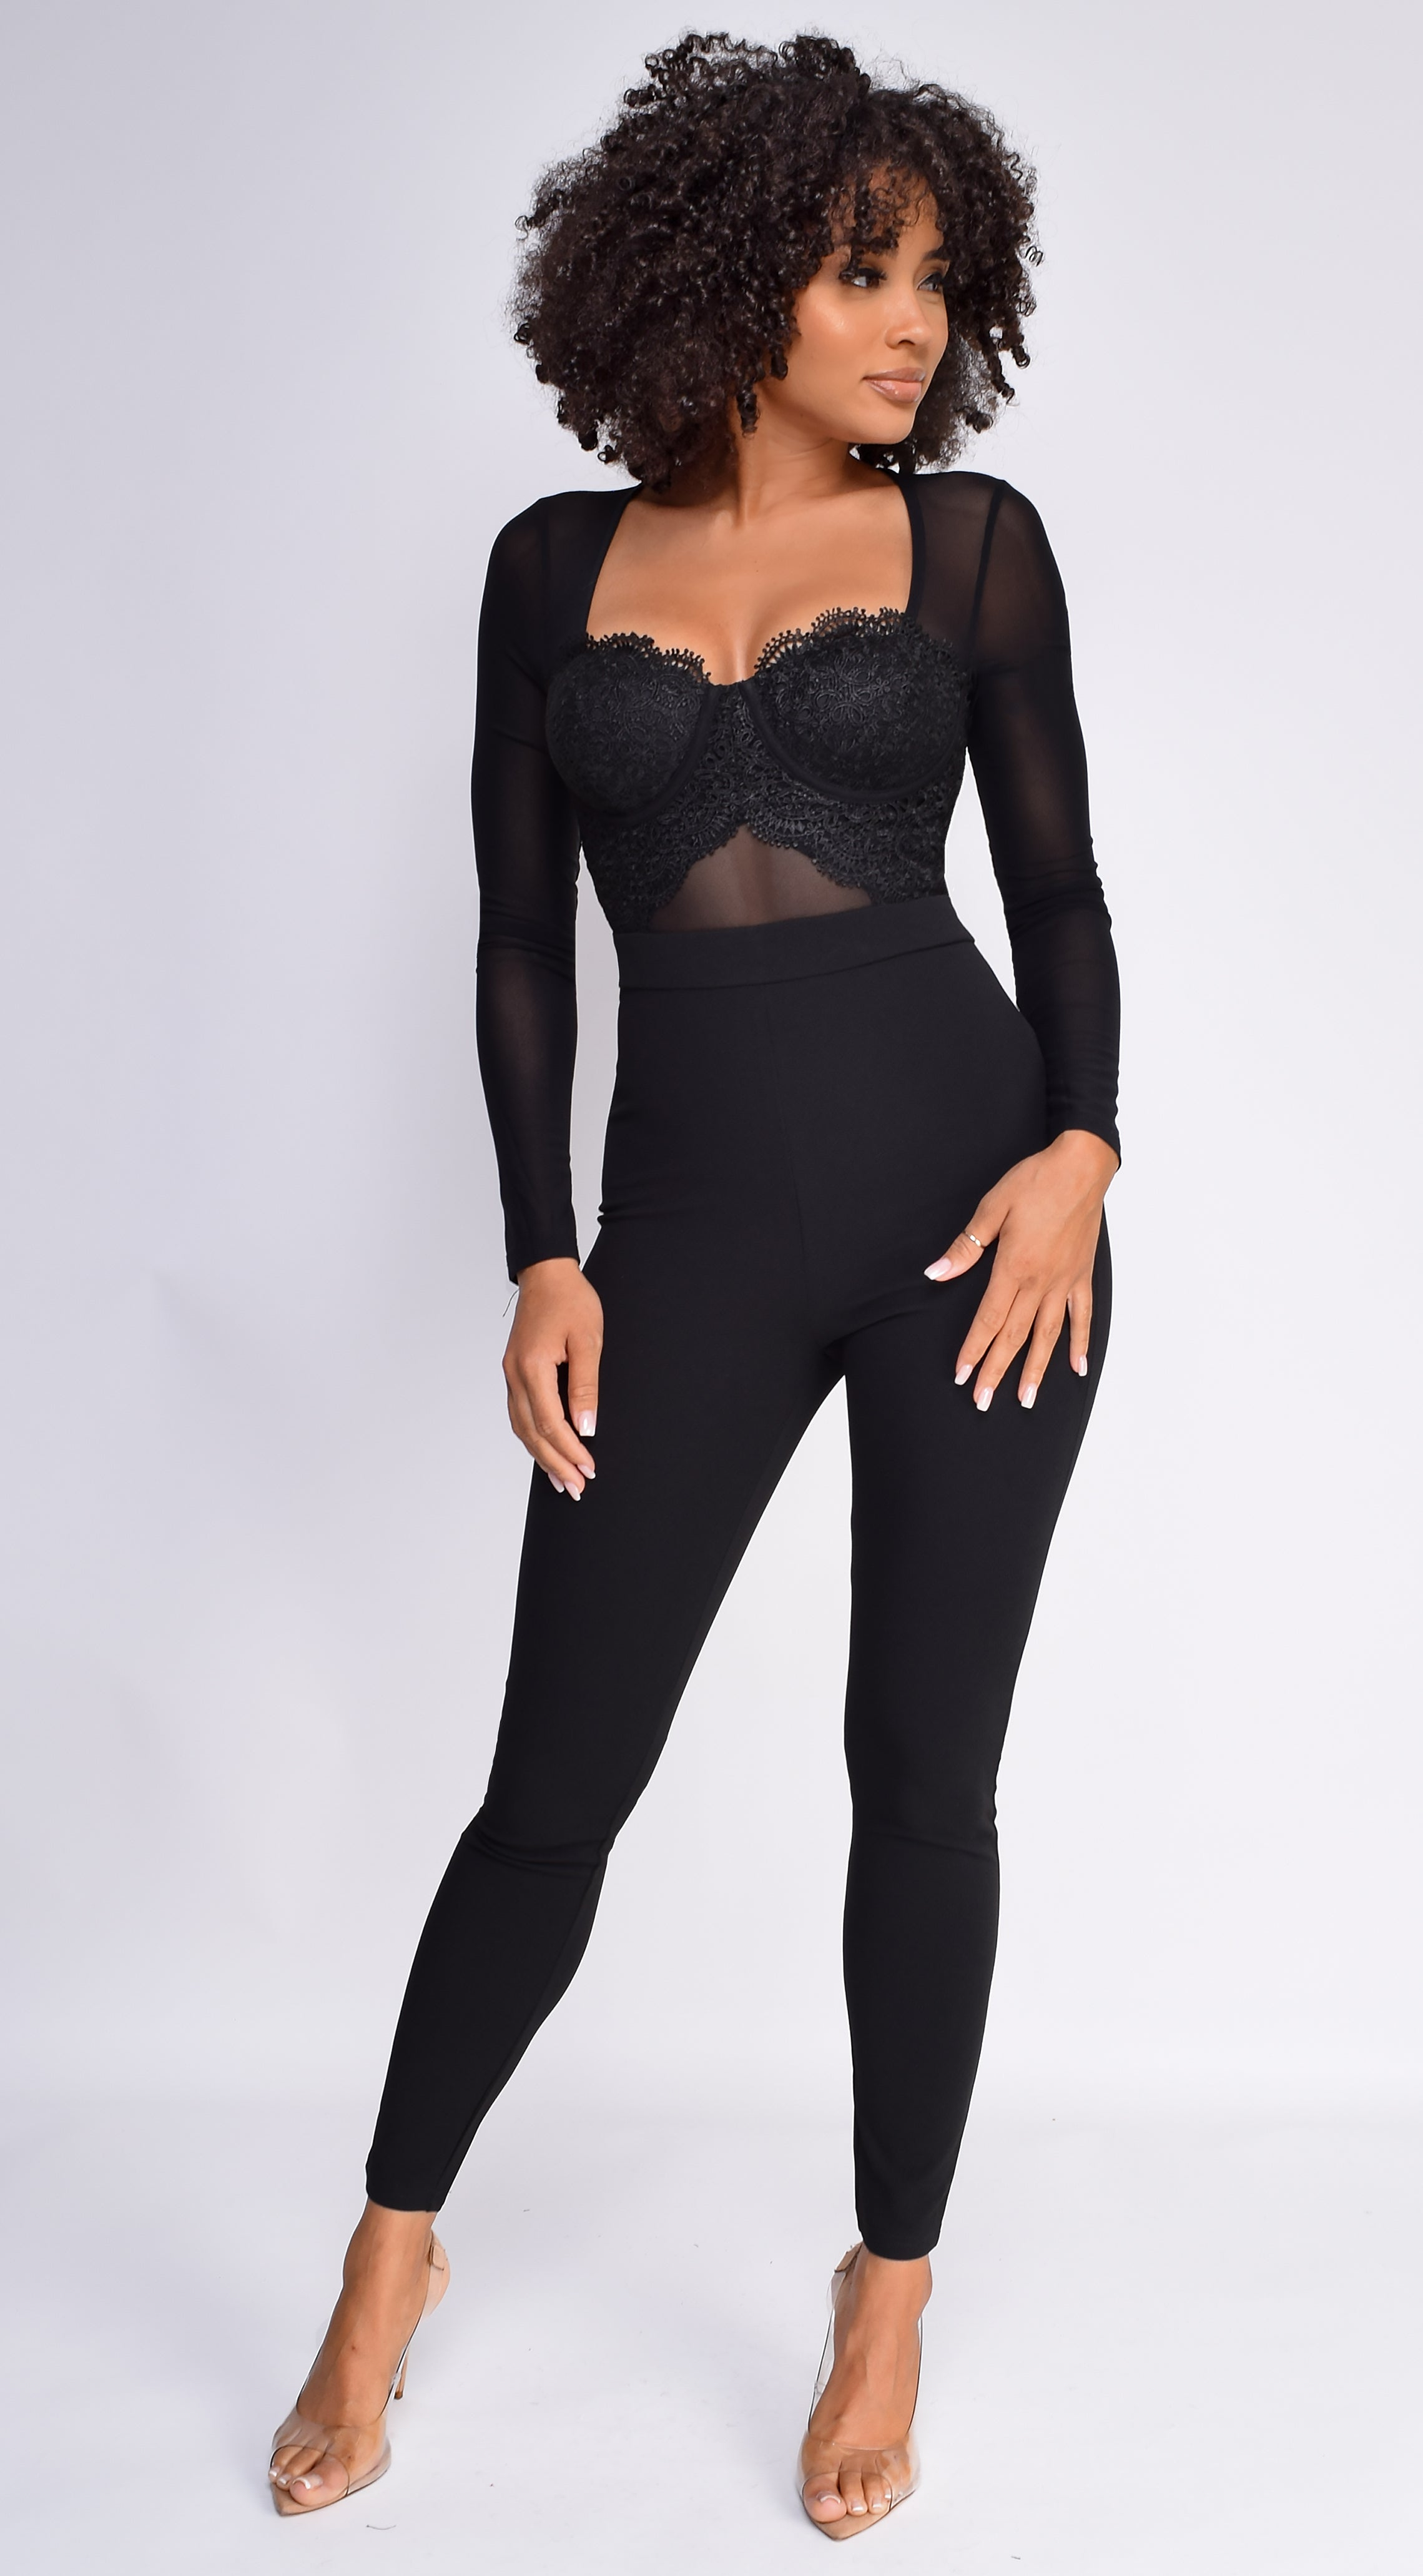 Lanora Black Scalloped Lace Bustier Mesh Jumpsuit